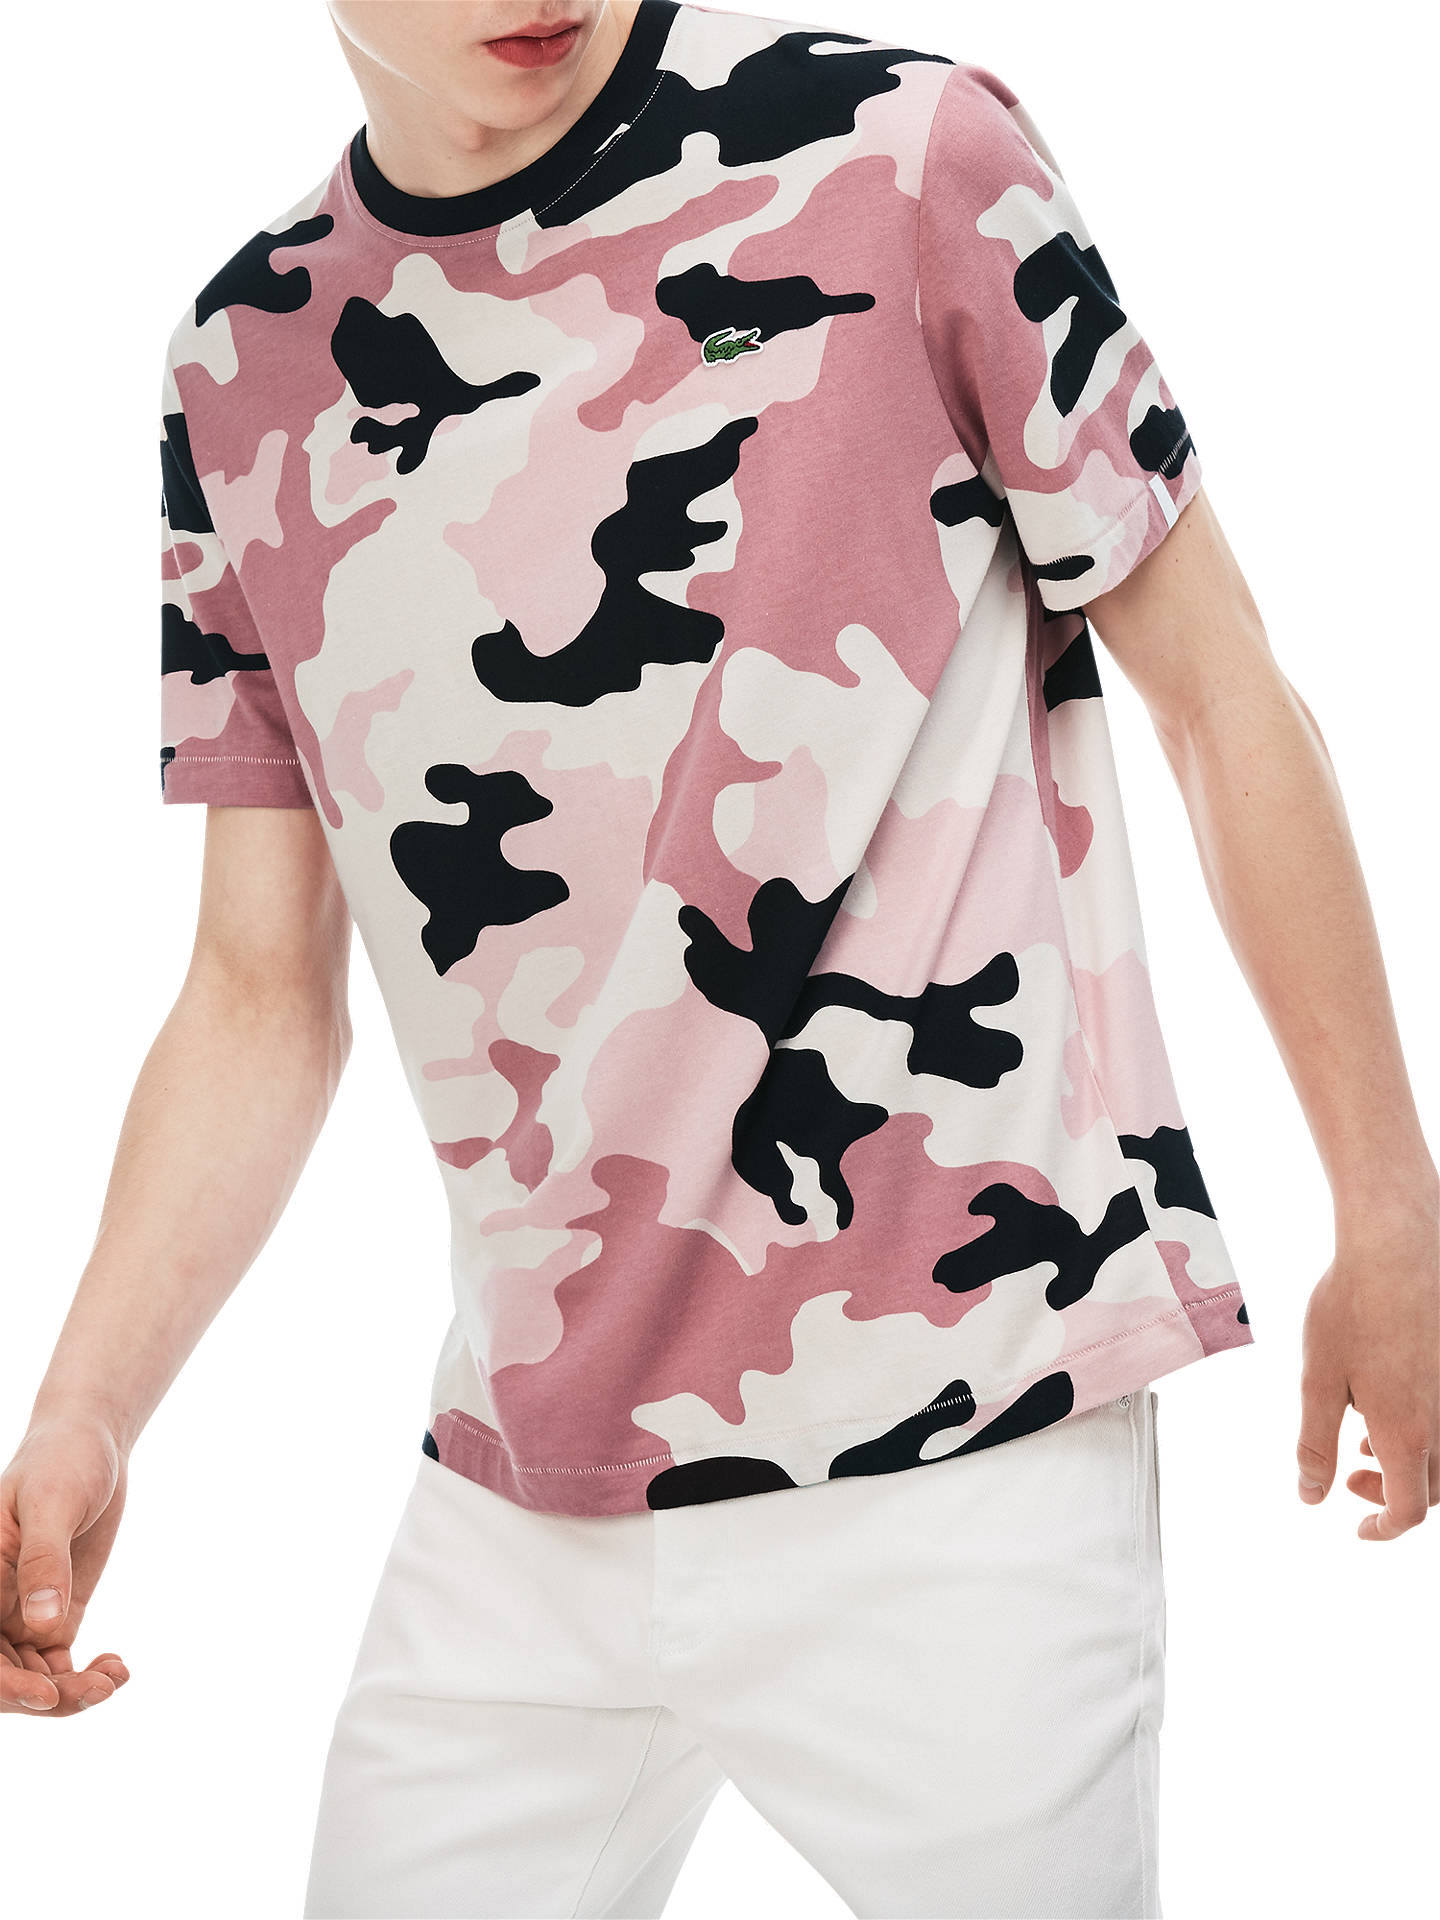 a40ad306470 Buy Lacoste LIVE Camo Short Sleeve T-Shirt